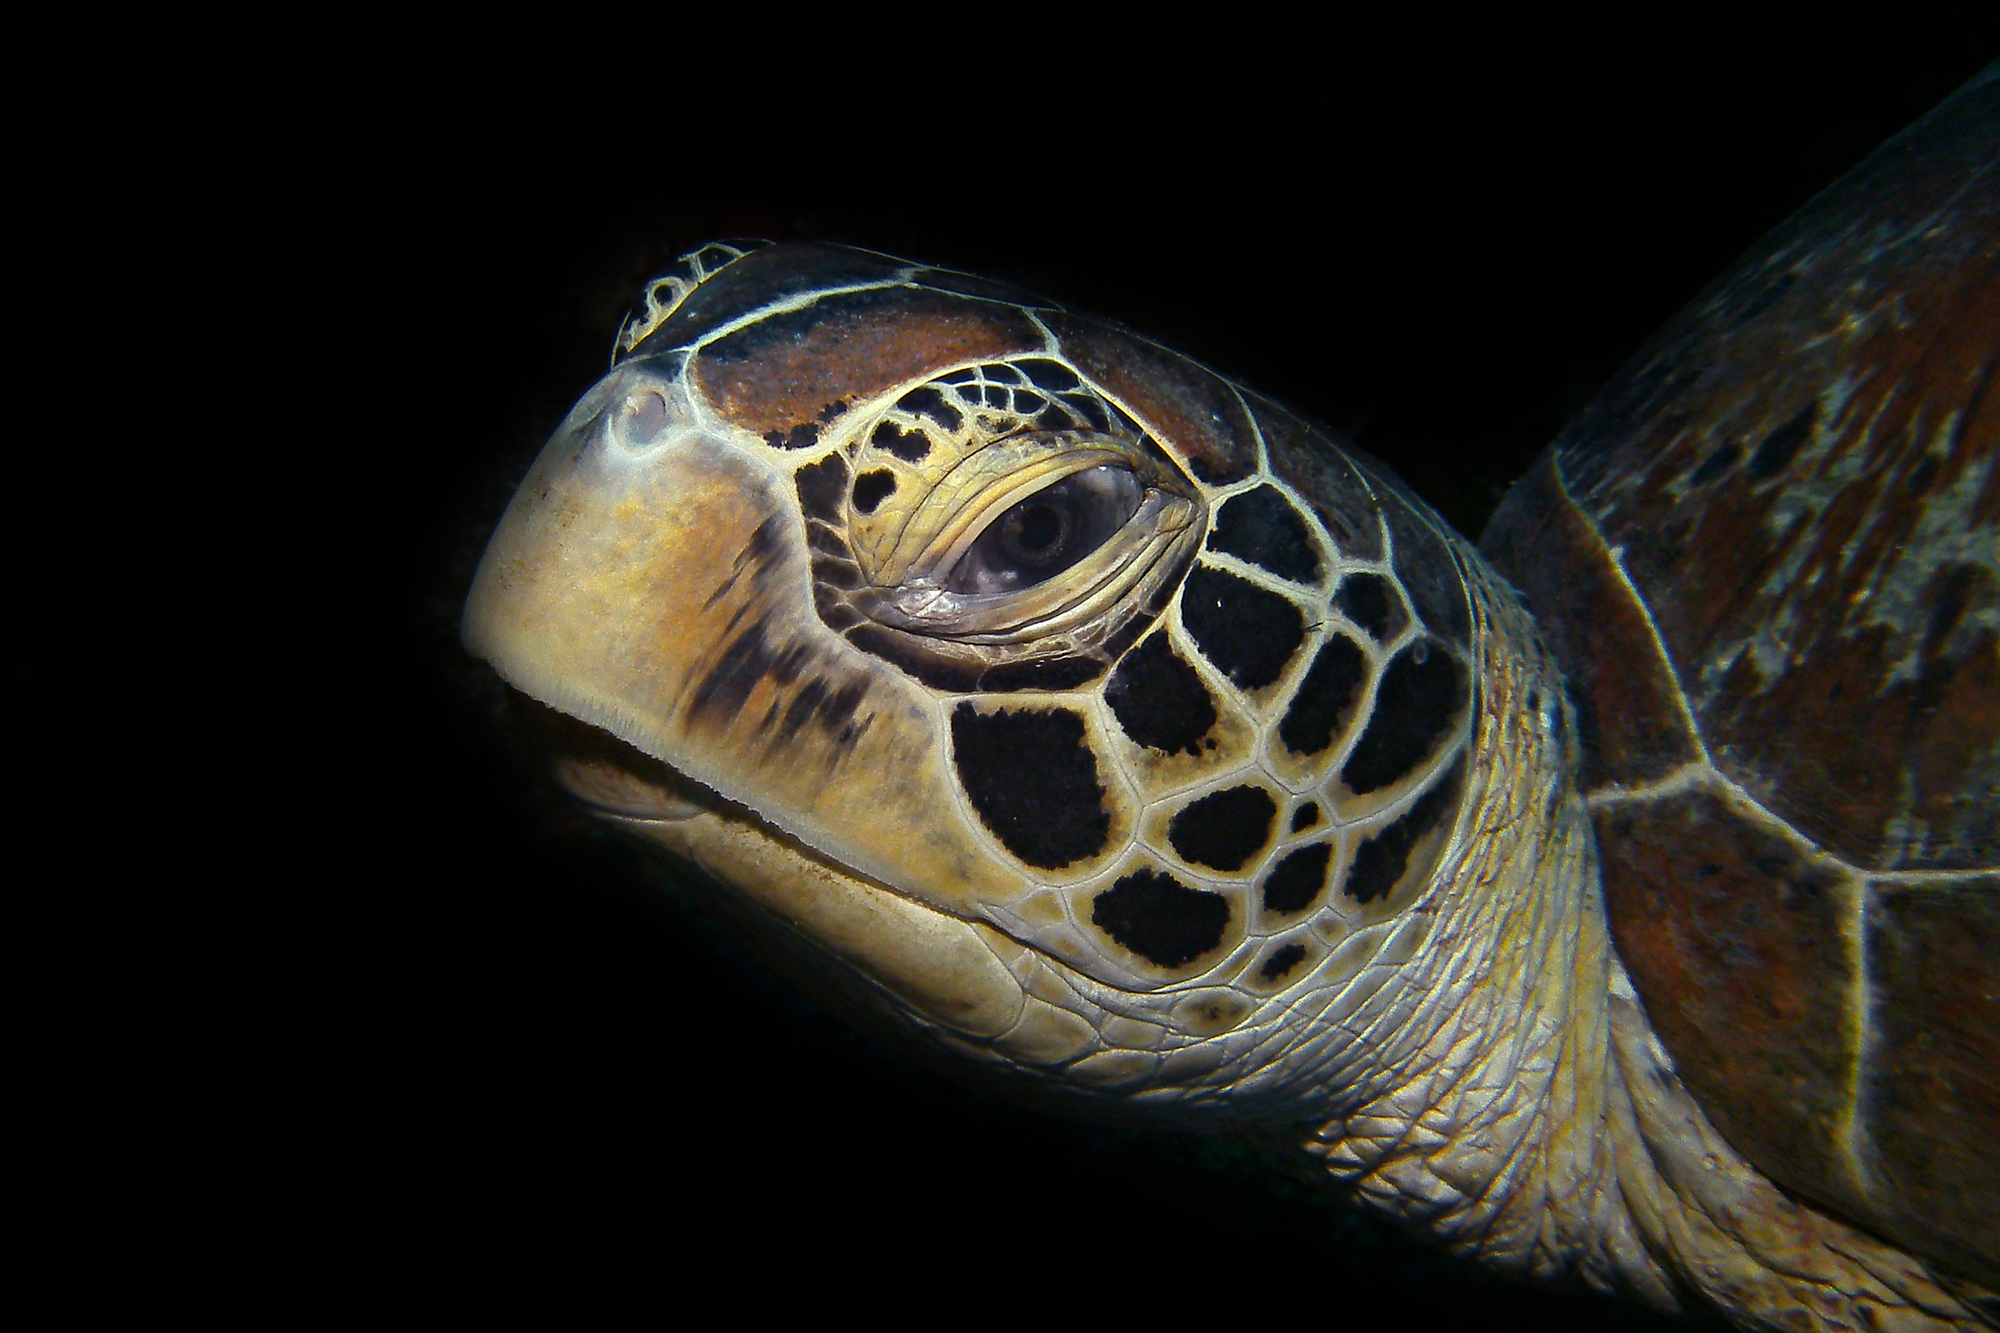 Green sea turtle from apo island or dauin near Atmosphere Resort in the Philippines